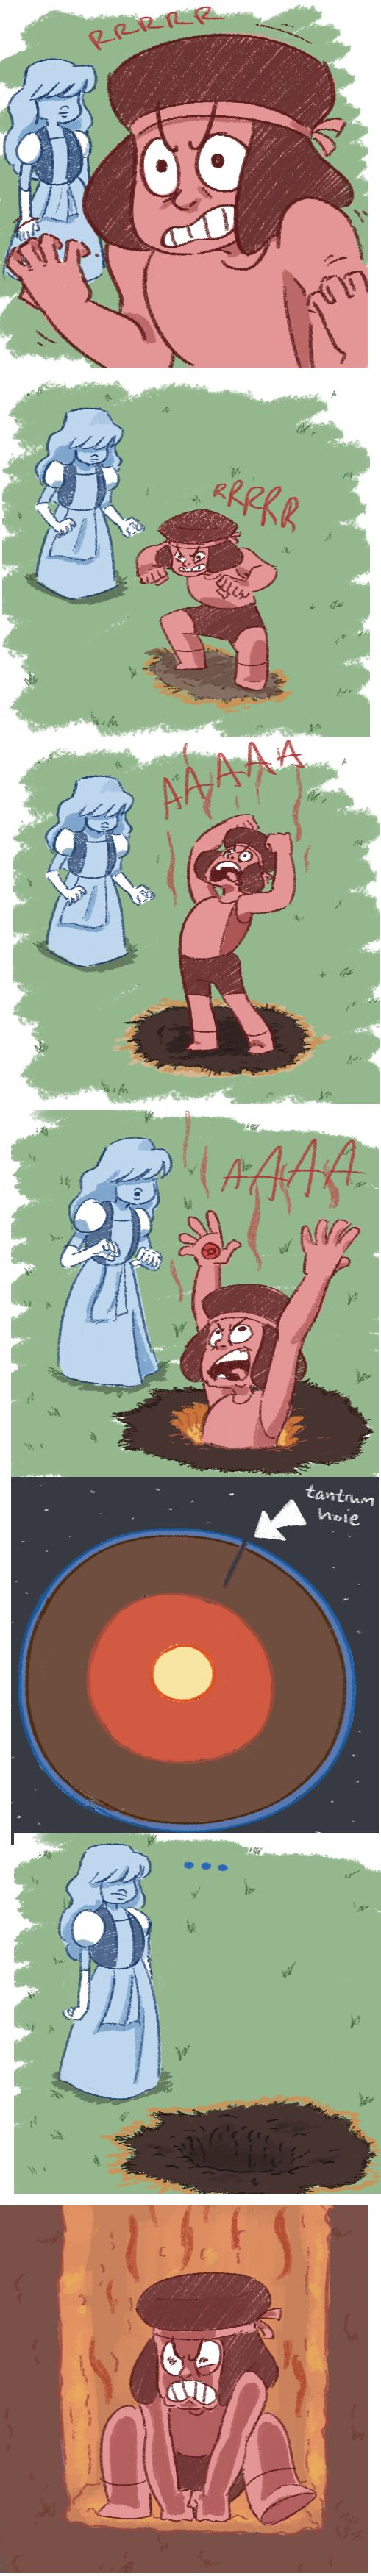 ...She might find the Cluster that way. <--- o___O <<< I'm sorry bUT TANTRUM HOLE